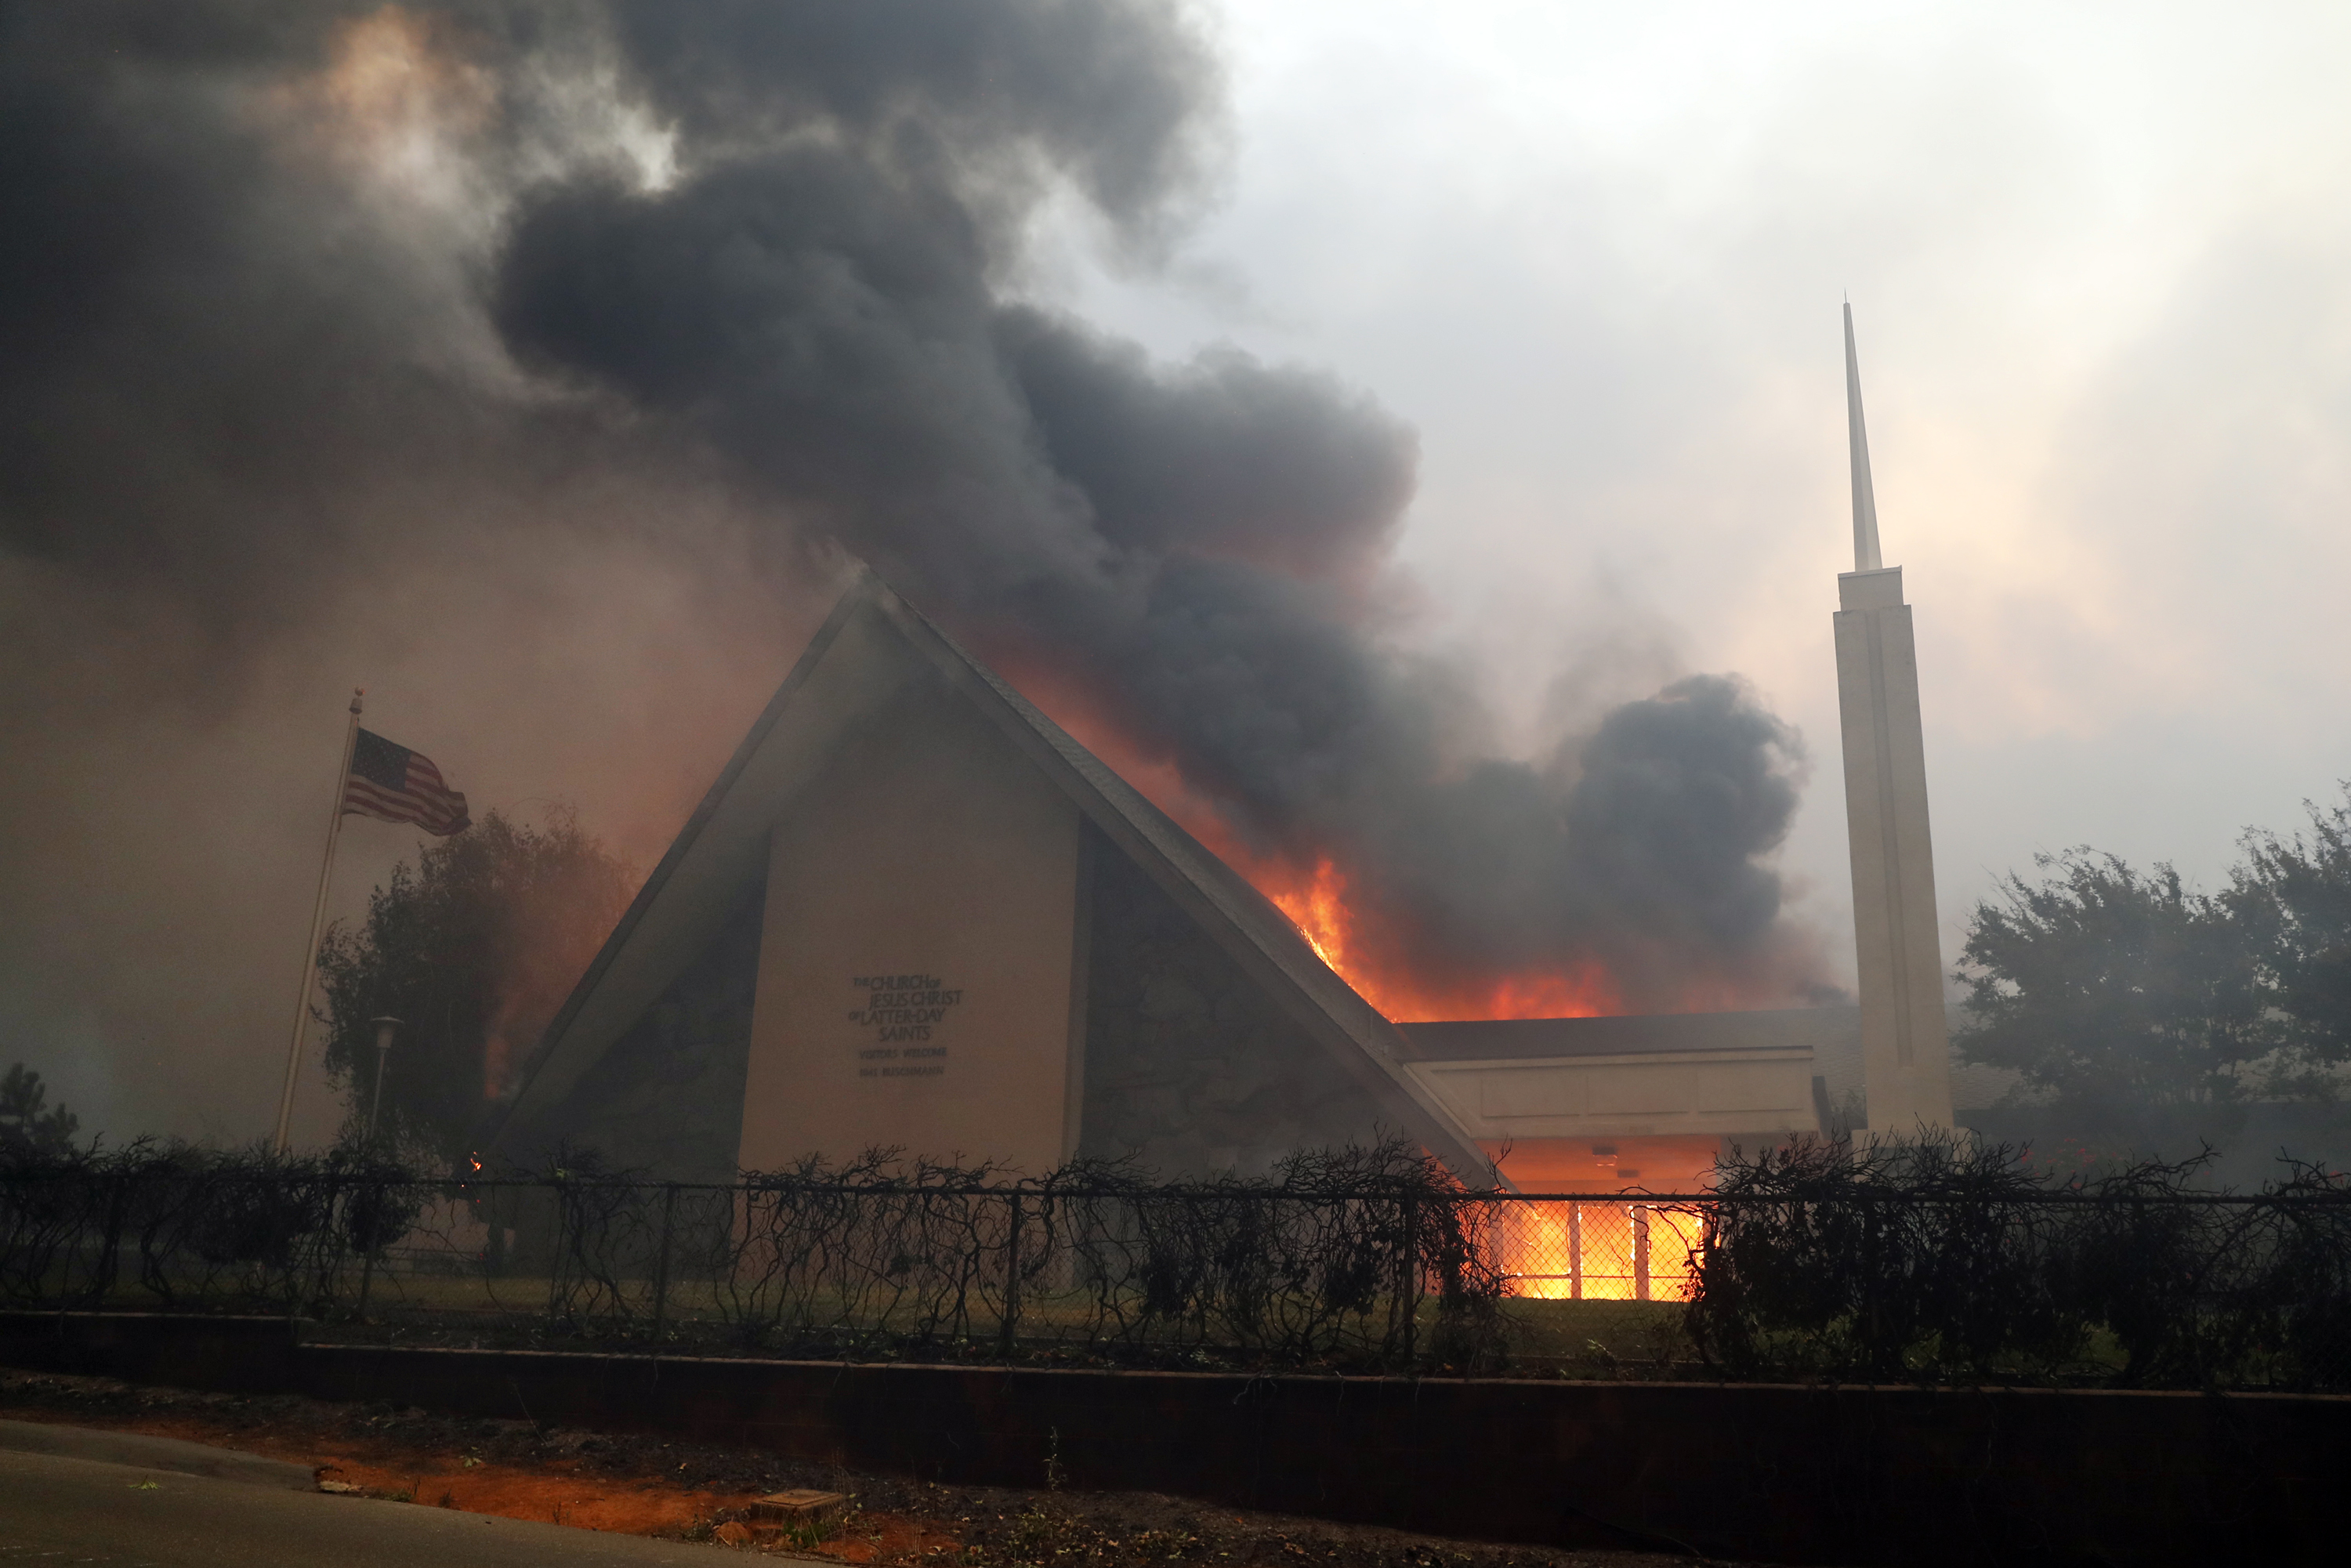 A meetinghouse of The Church of Jesus Christ of Latter Day Saints burns during Camp Fire in Paradise, Calif.. on Thursday, November 8, 2018.